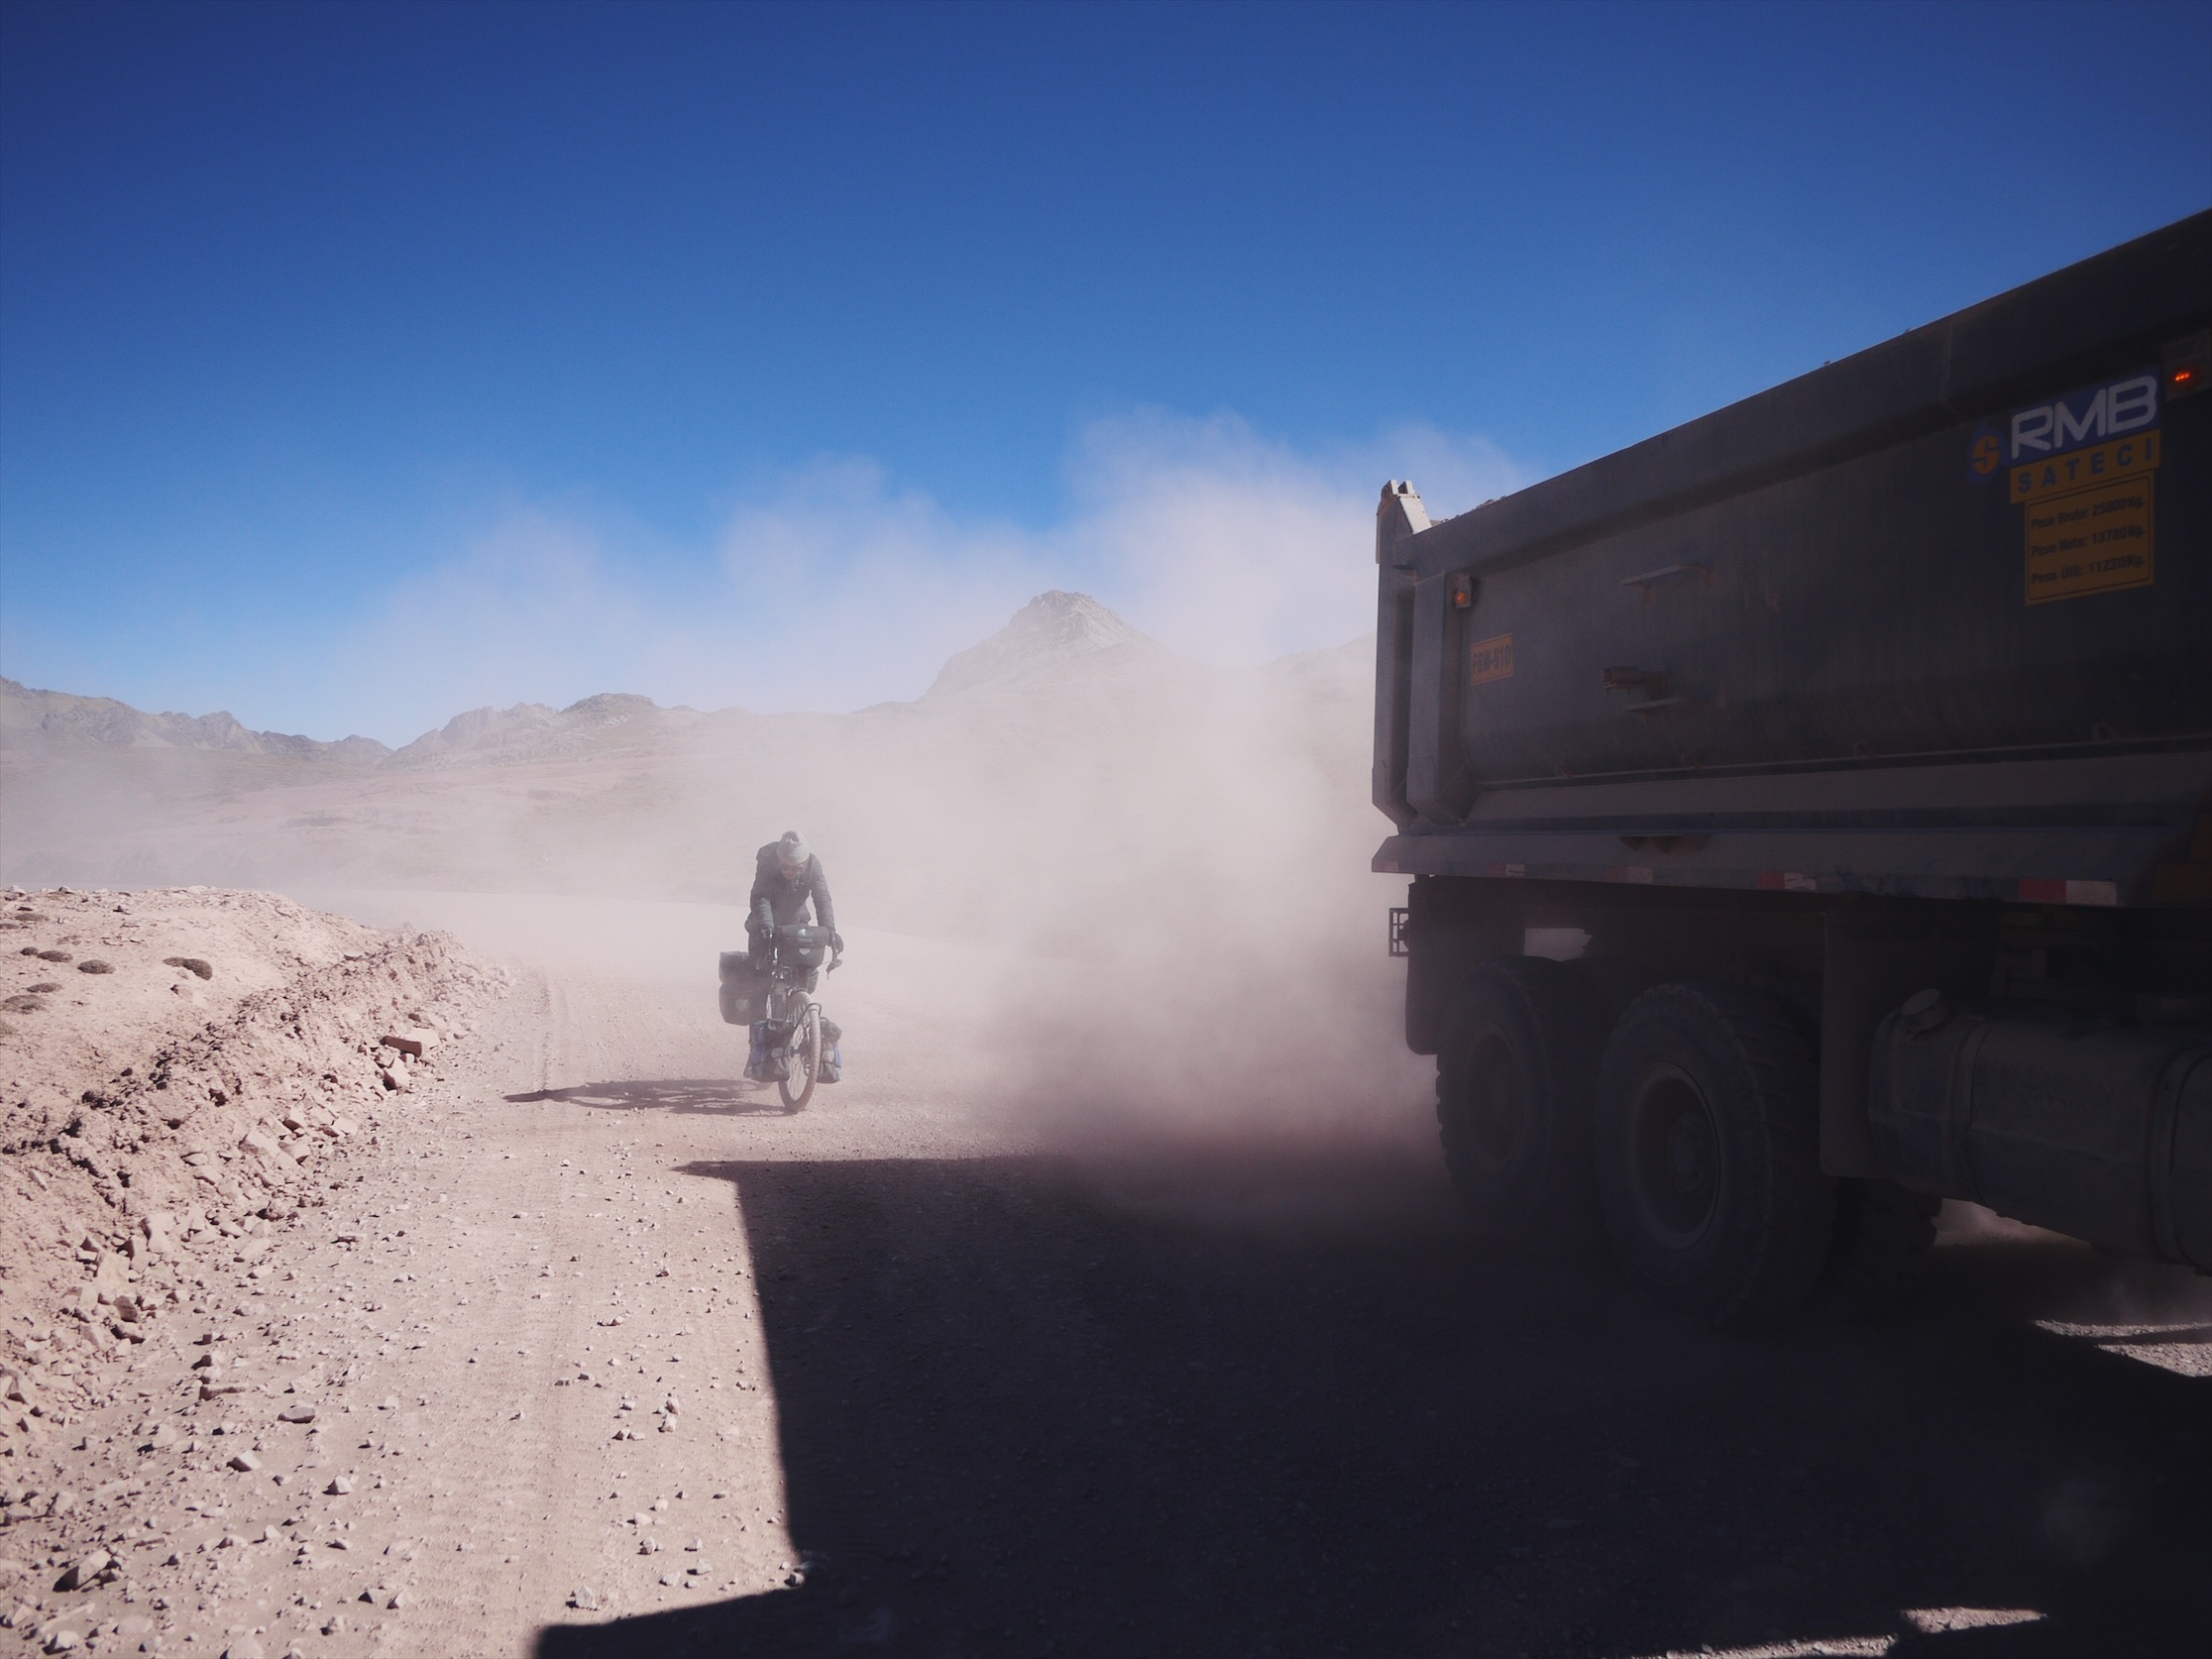 Roads are built for a purpose. Often, on the more remote roads, that purpose is to extract the resources that lie at their distant ends. When you dump-truck drive the same 20 miles for a lifetime, you think little of dusting lost gringos.